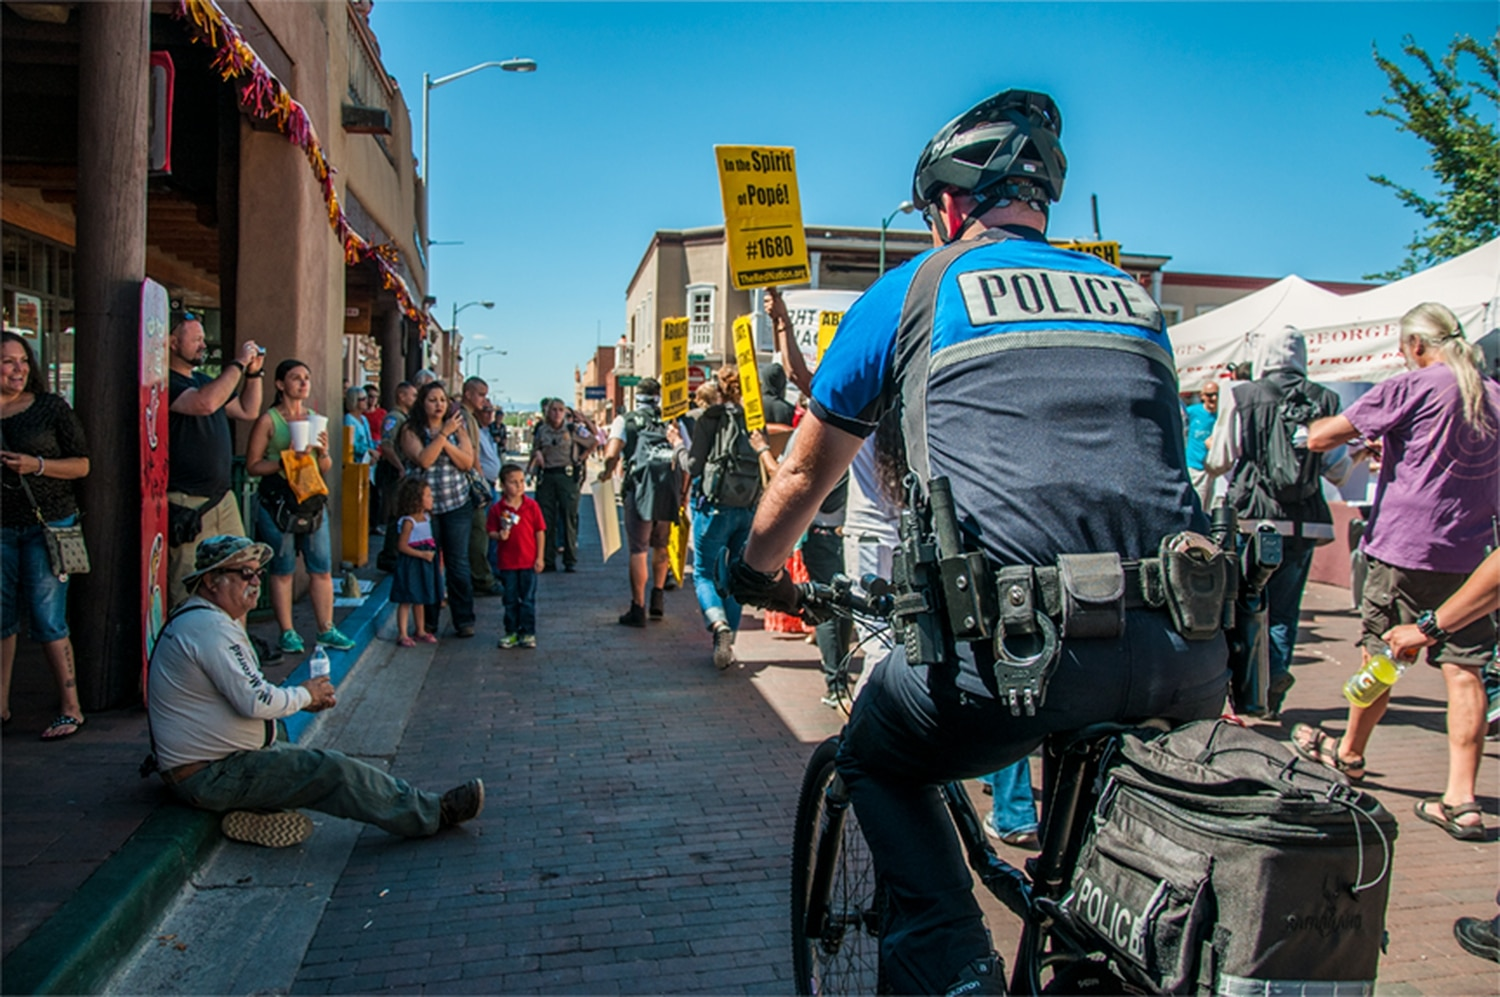 SFPD bicycle patrols cruised the streets last year on the Plaza during a protest at the Fiesta Entrada.